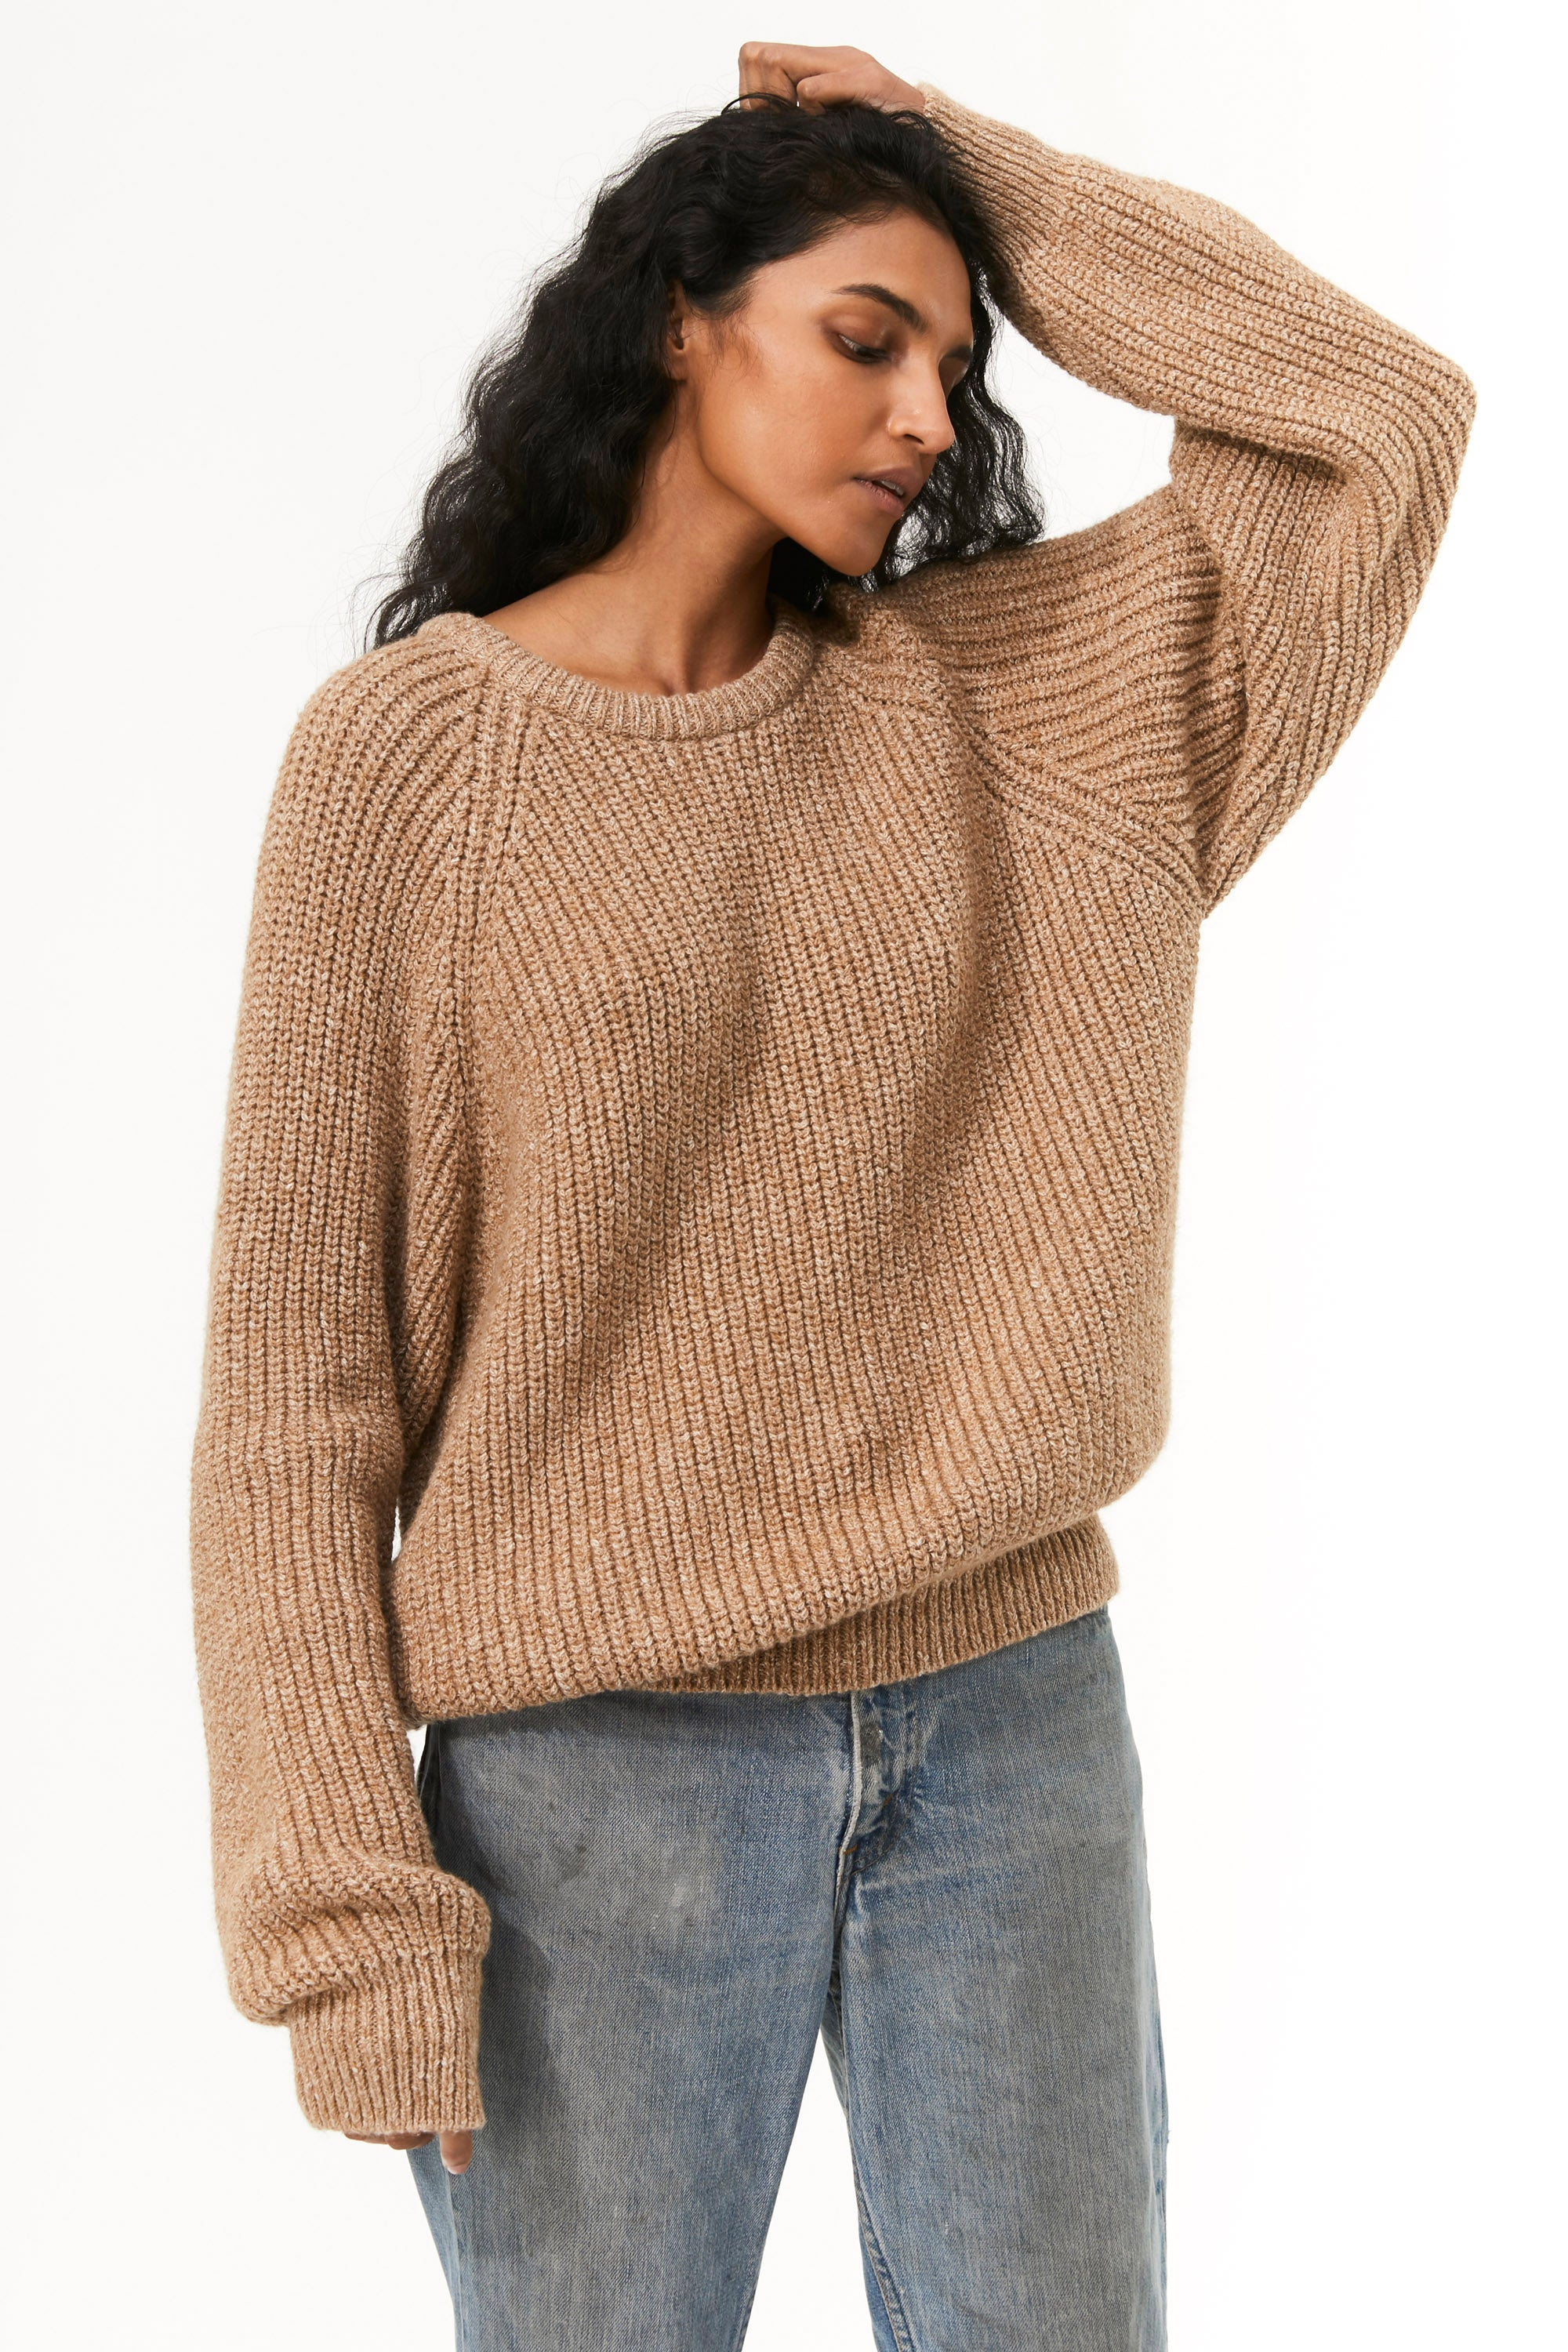 Mara Hoffman Camel Avery Sweater in organic cotton (front detail)